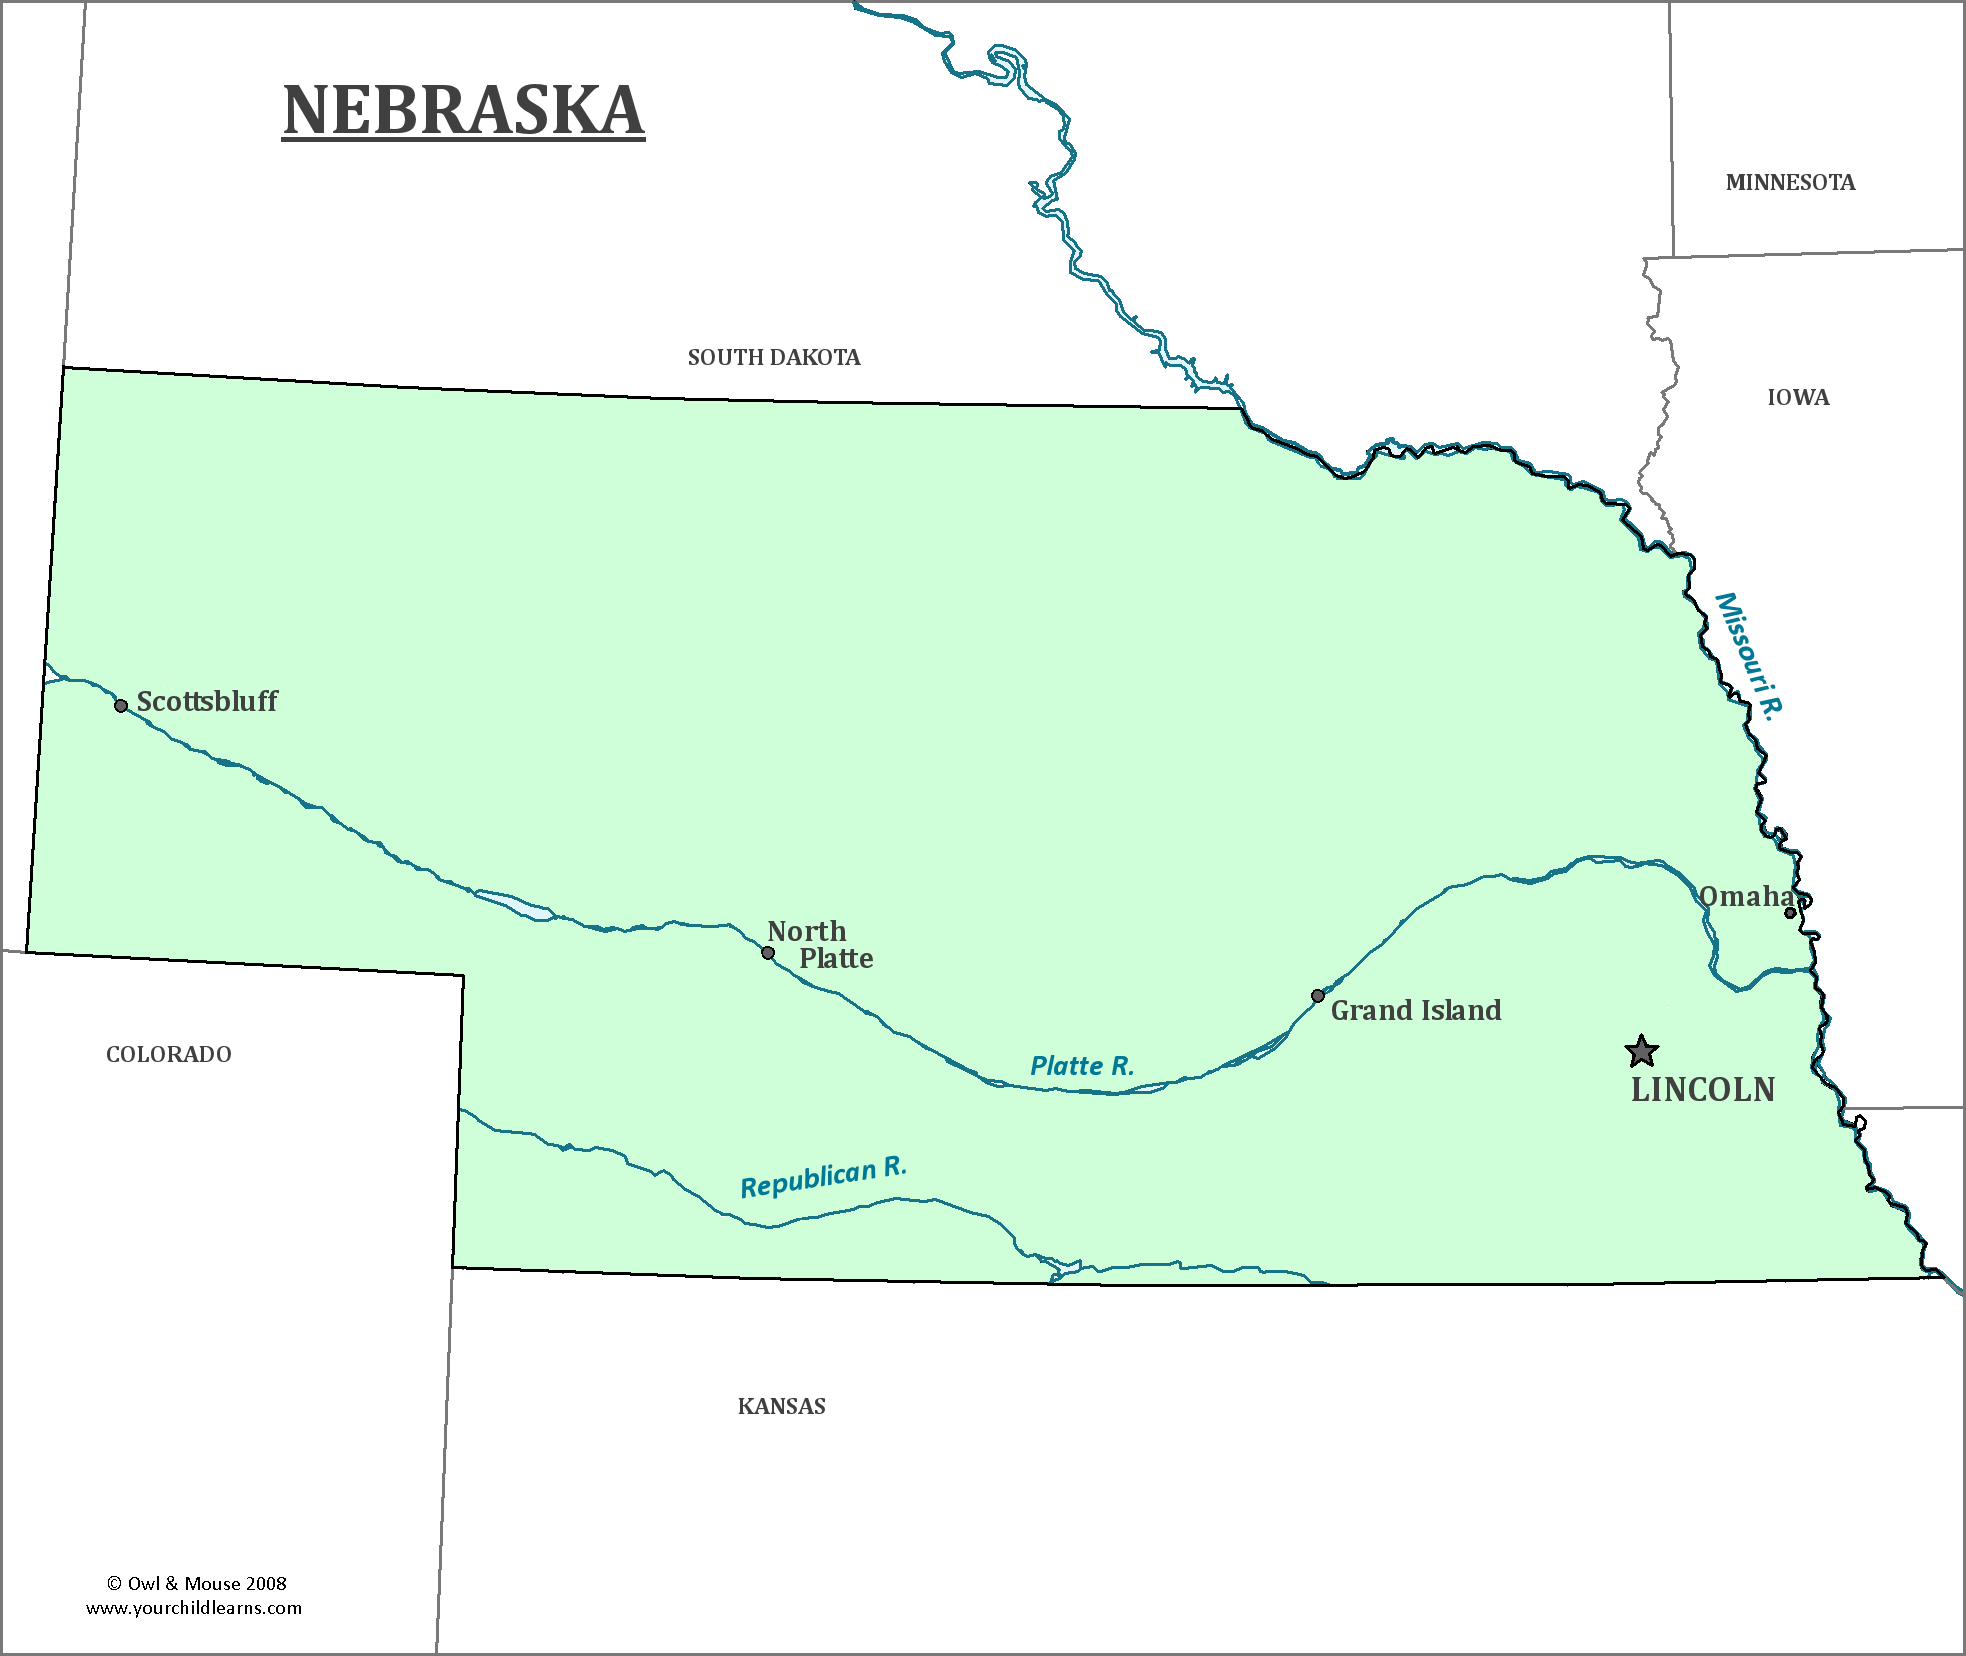 Nebraska State Map Map Of Nebraska And Information About The State - State map of nebraska